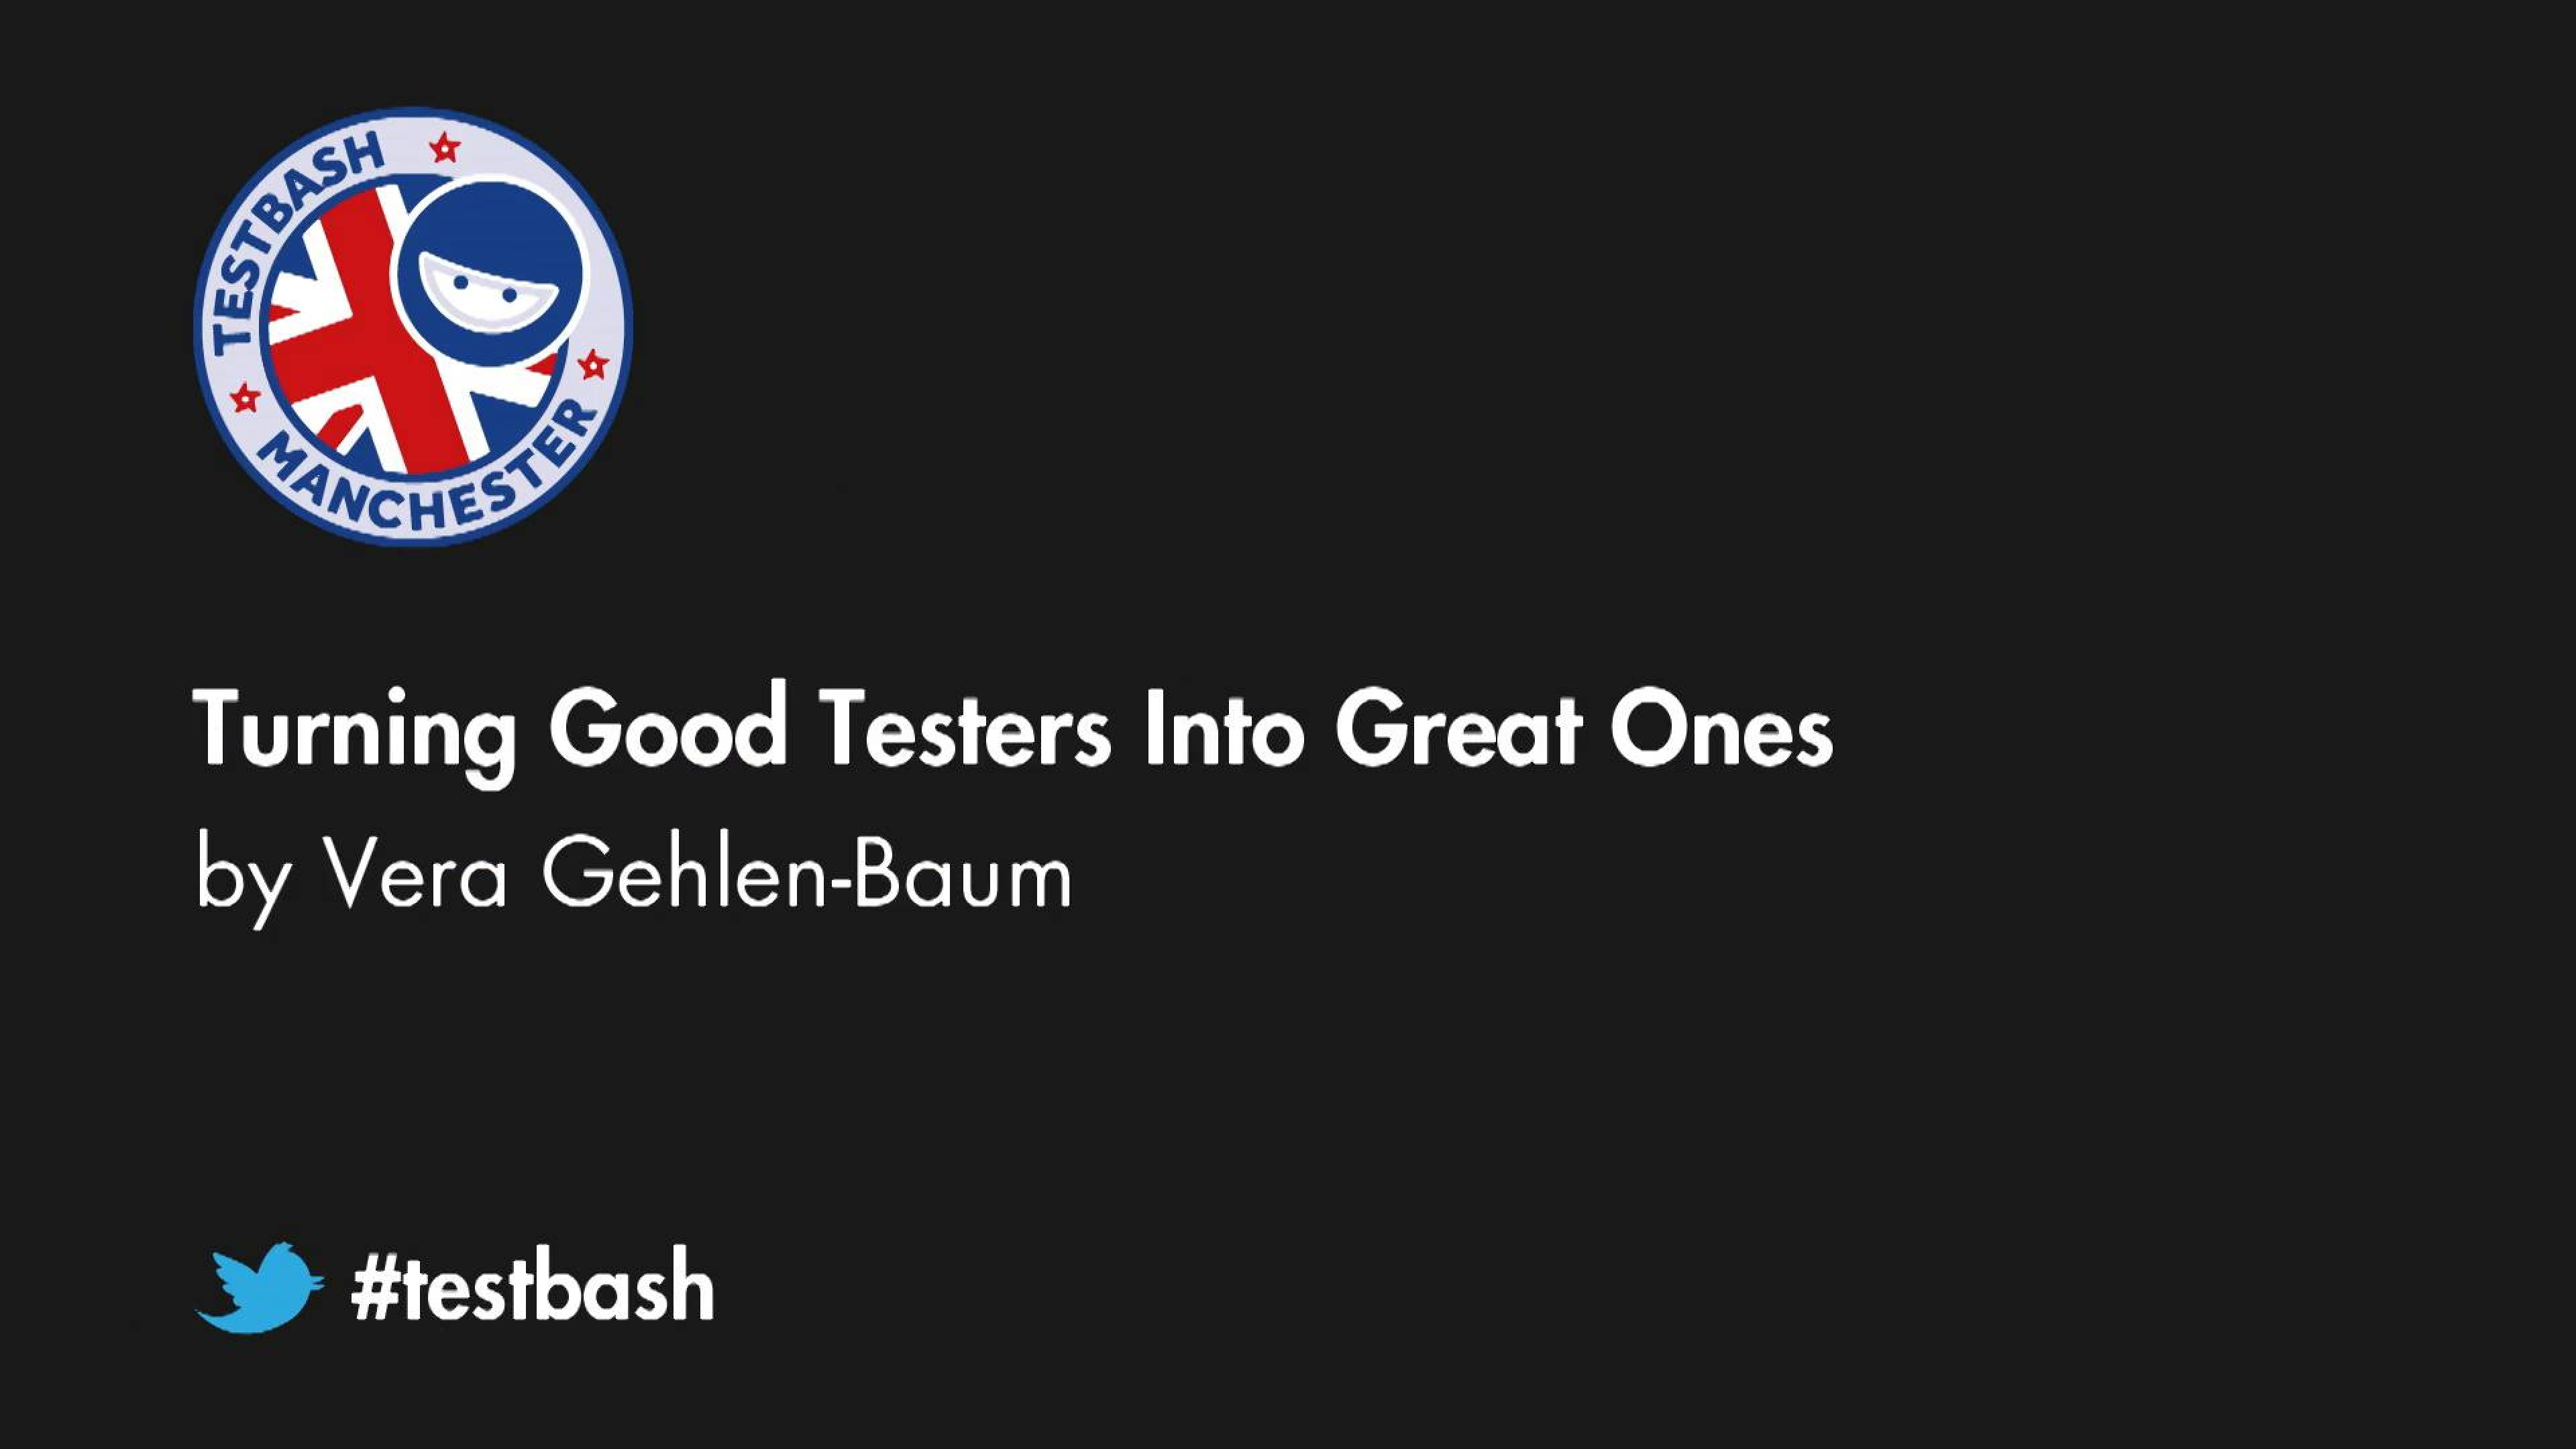 Turning Good Testers Into Great Ones - Vera Gehlen-Baum